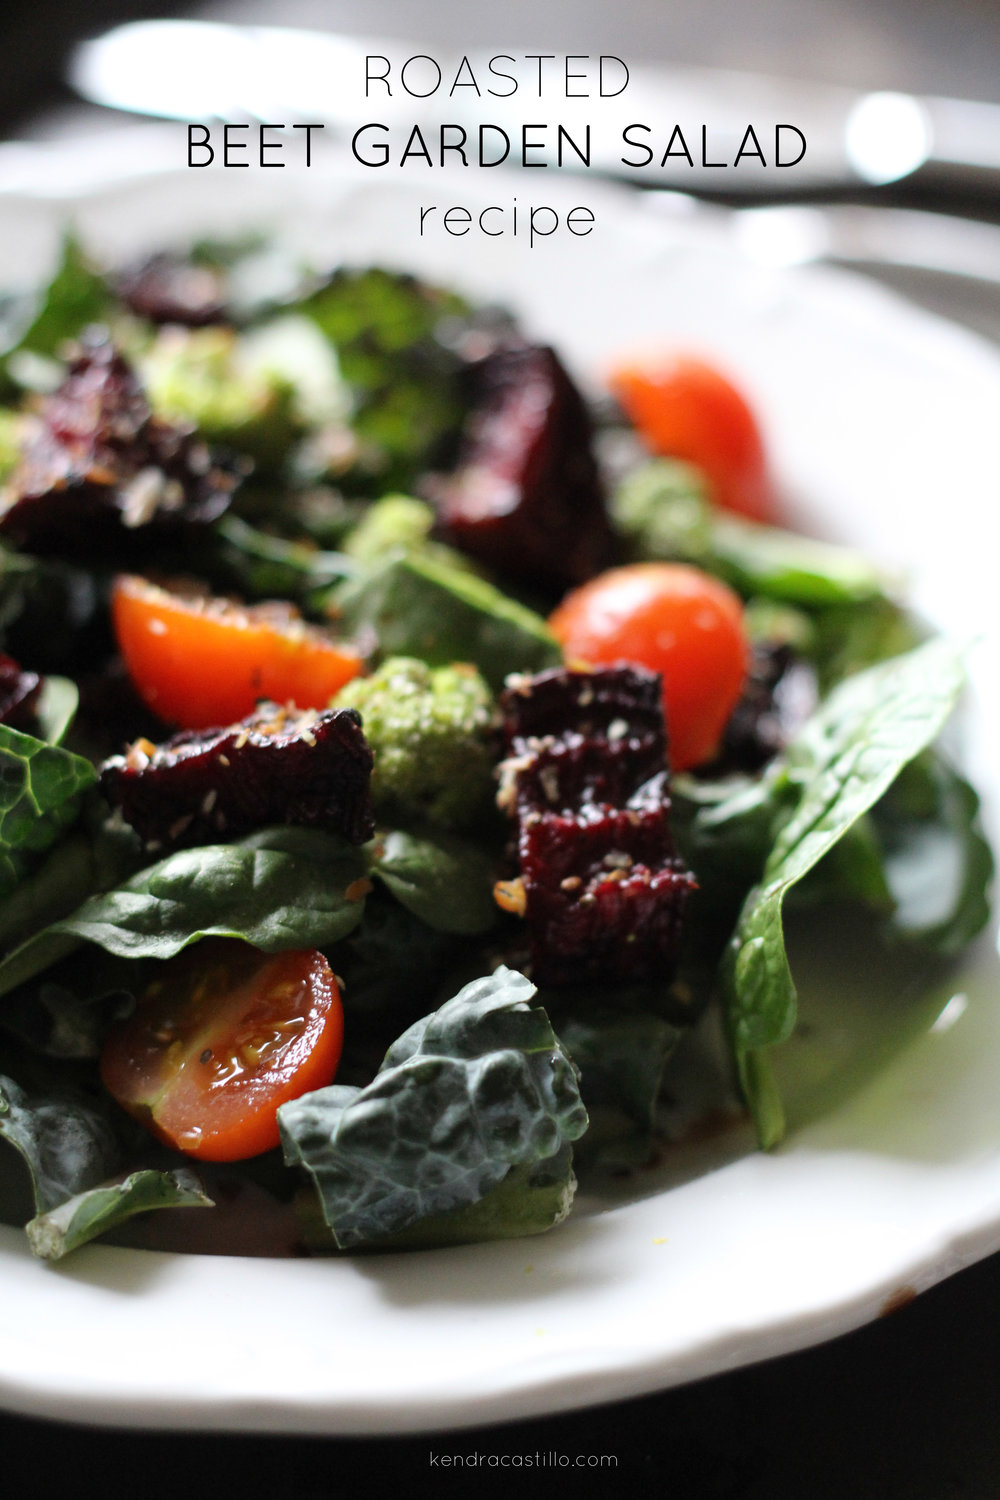 Kendra Castillo: Seasonal Roasted Beet Garden Salad